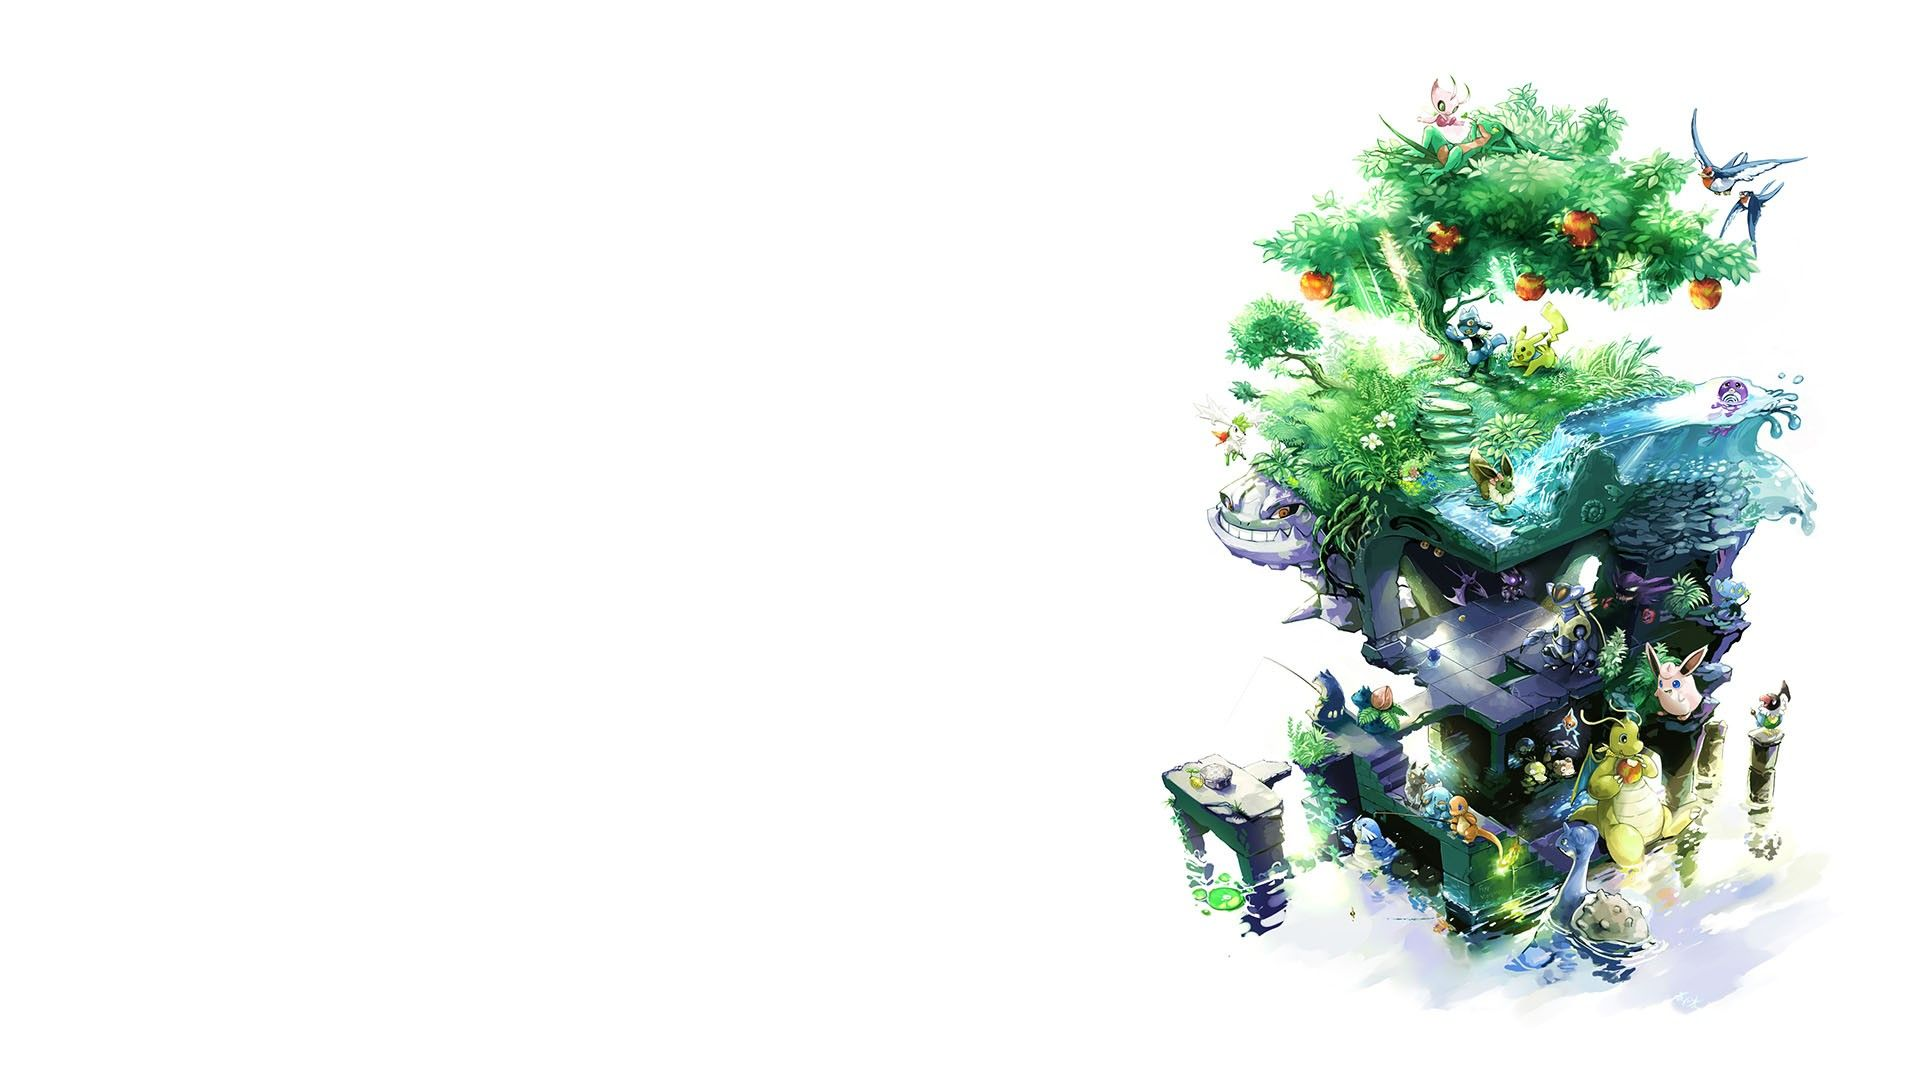 1920x1080 Pokemon Tree White Background Hd Wallpapers 1080p Background Hd Wallpaper White Background Hd Hd Wallpapers 1080p